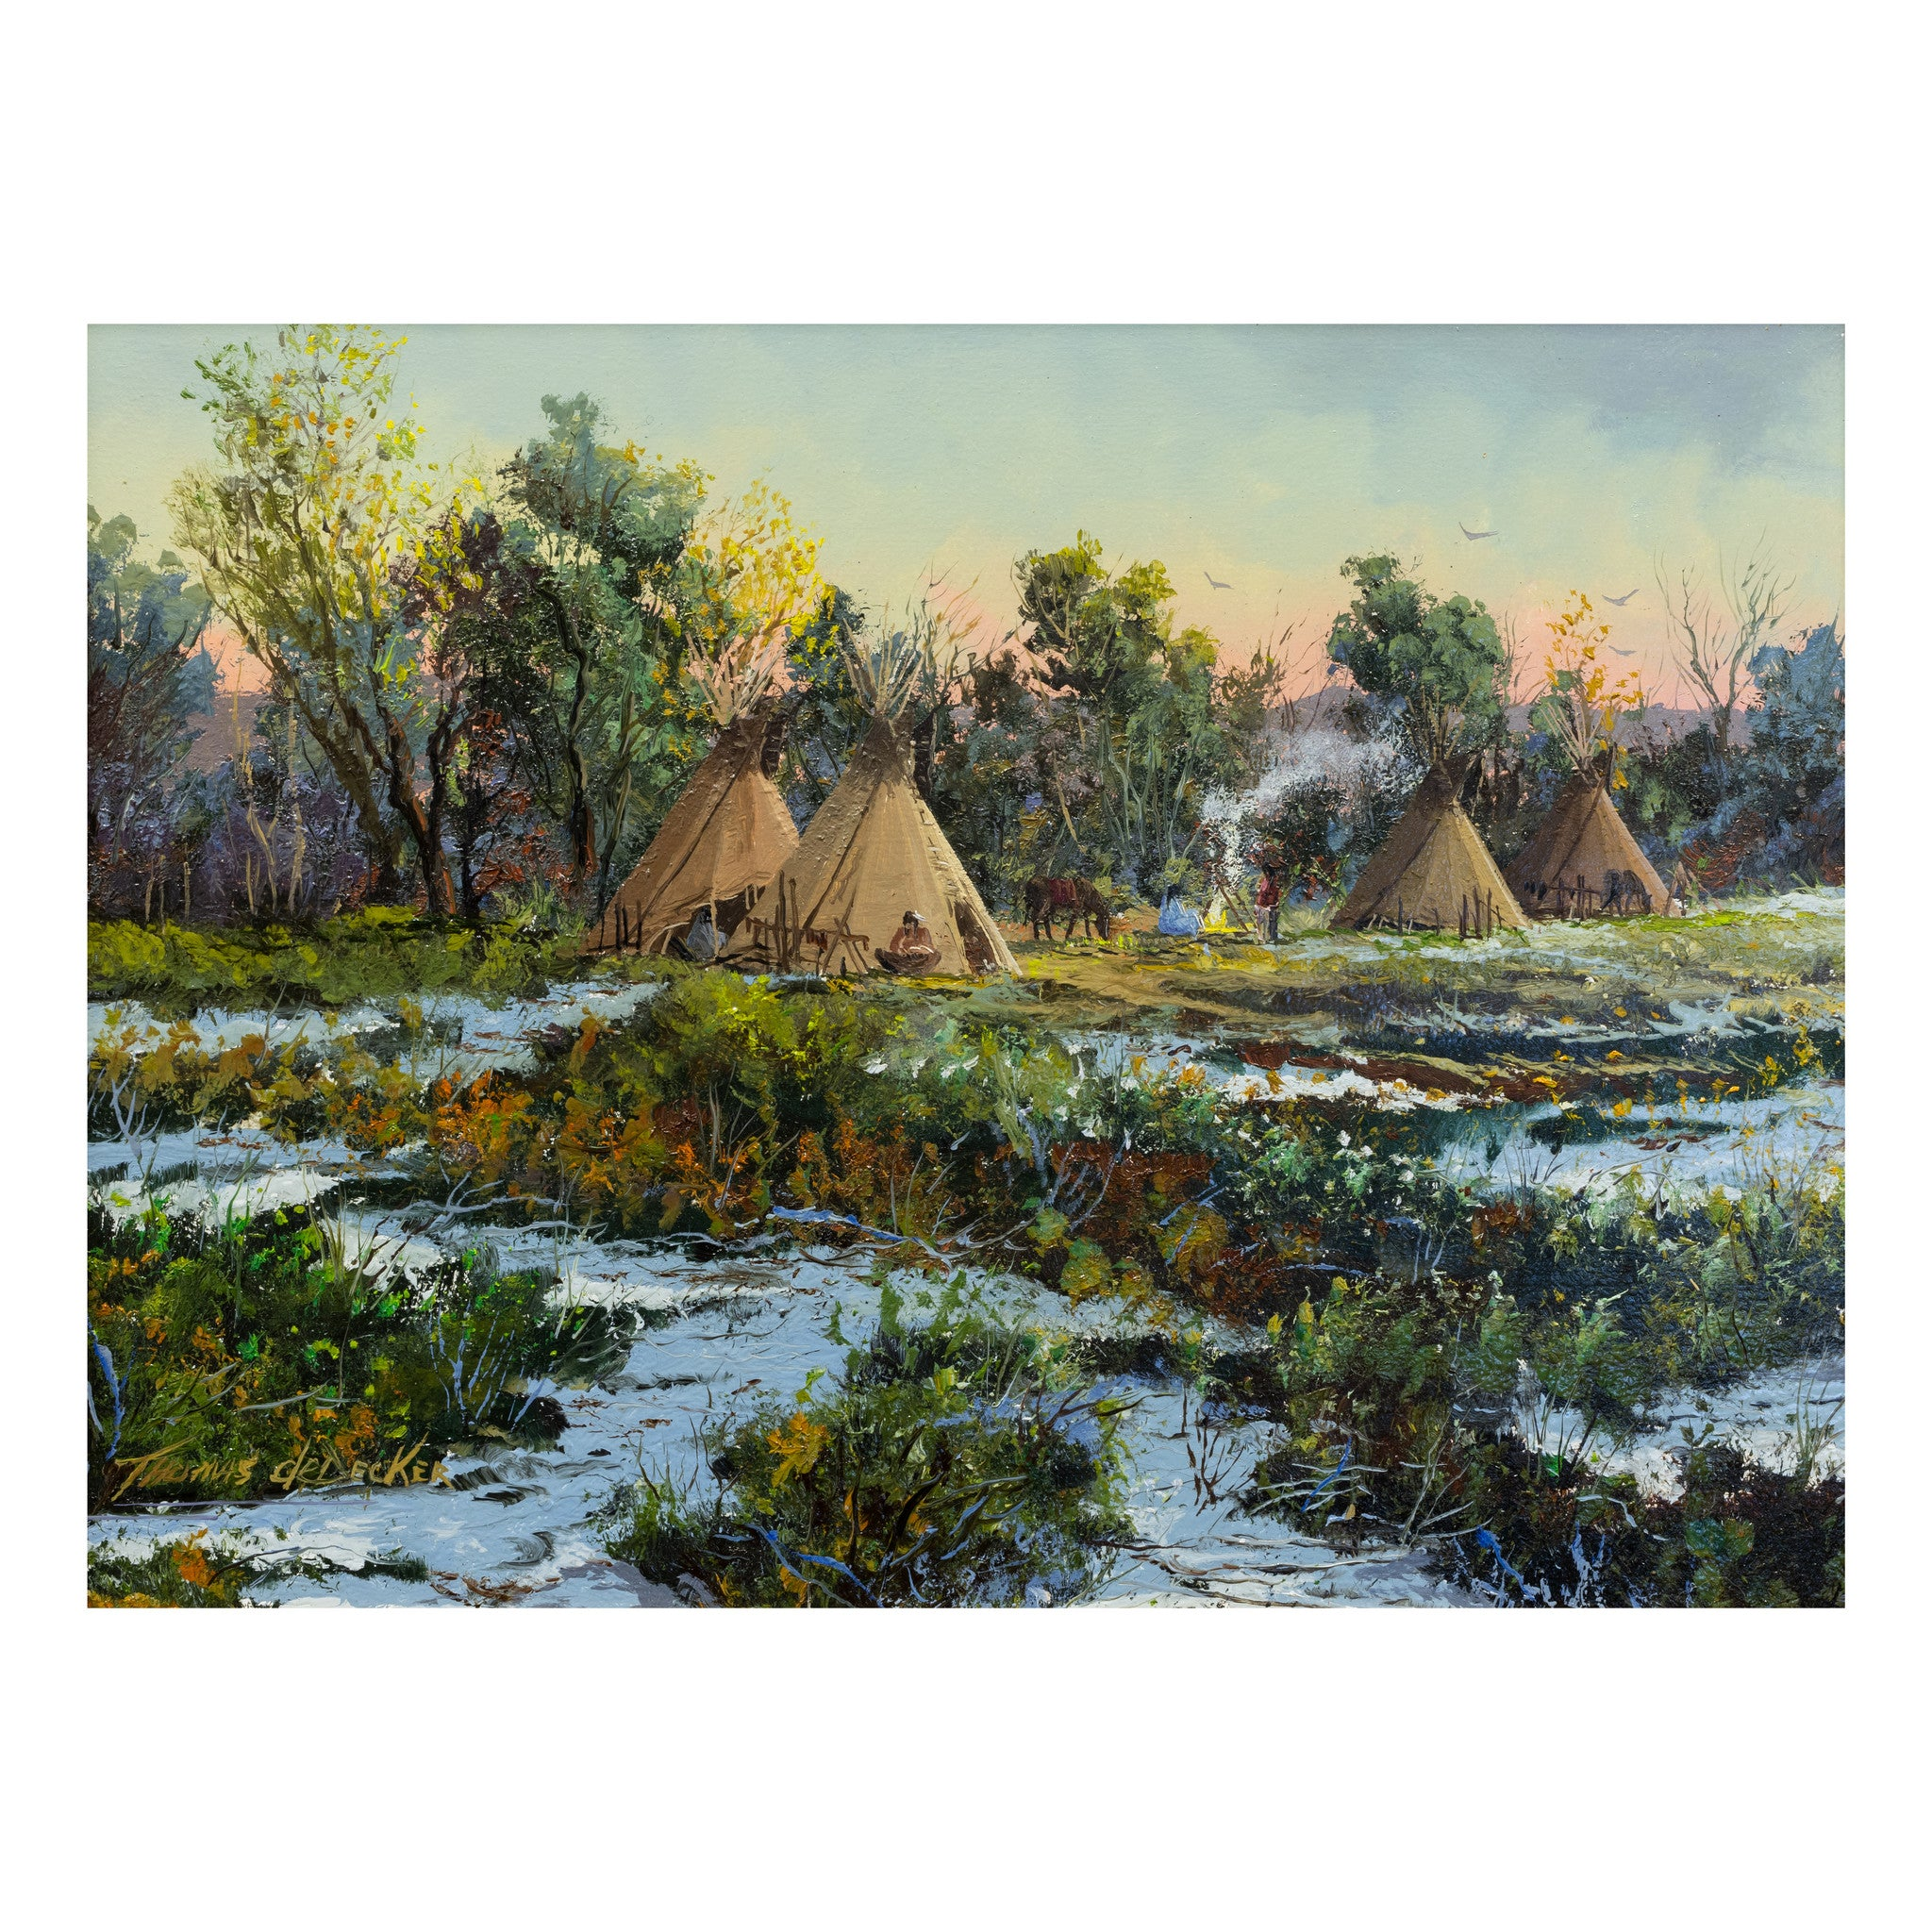 Late Spring Encampment by Thomas deDecker new item, oil paintings, paintings - native, thomas dedecker